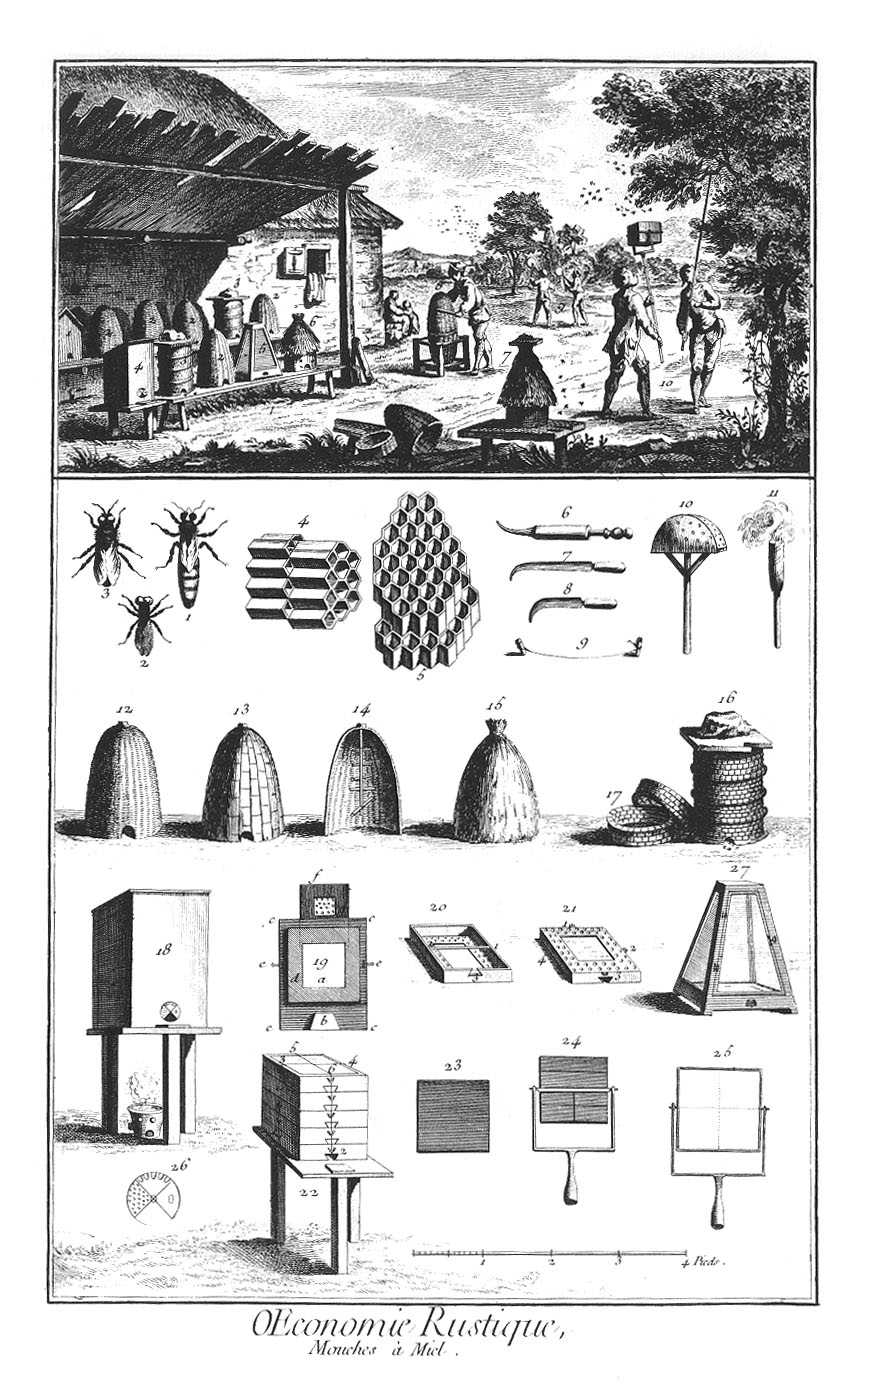 'Mouches à miel, ruches' (1762) from Diderot and D'Alembert's Encyclopédie